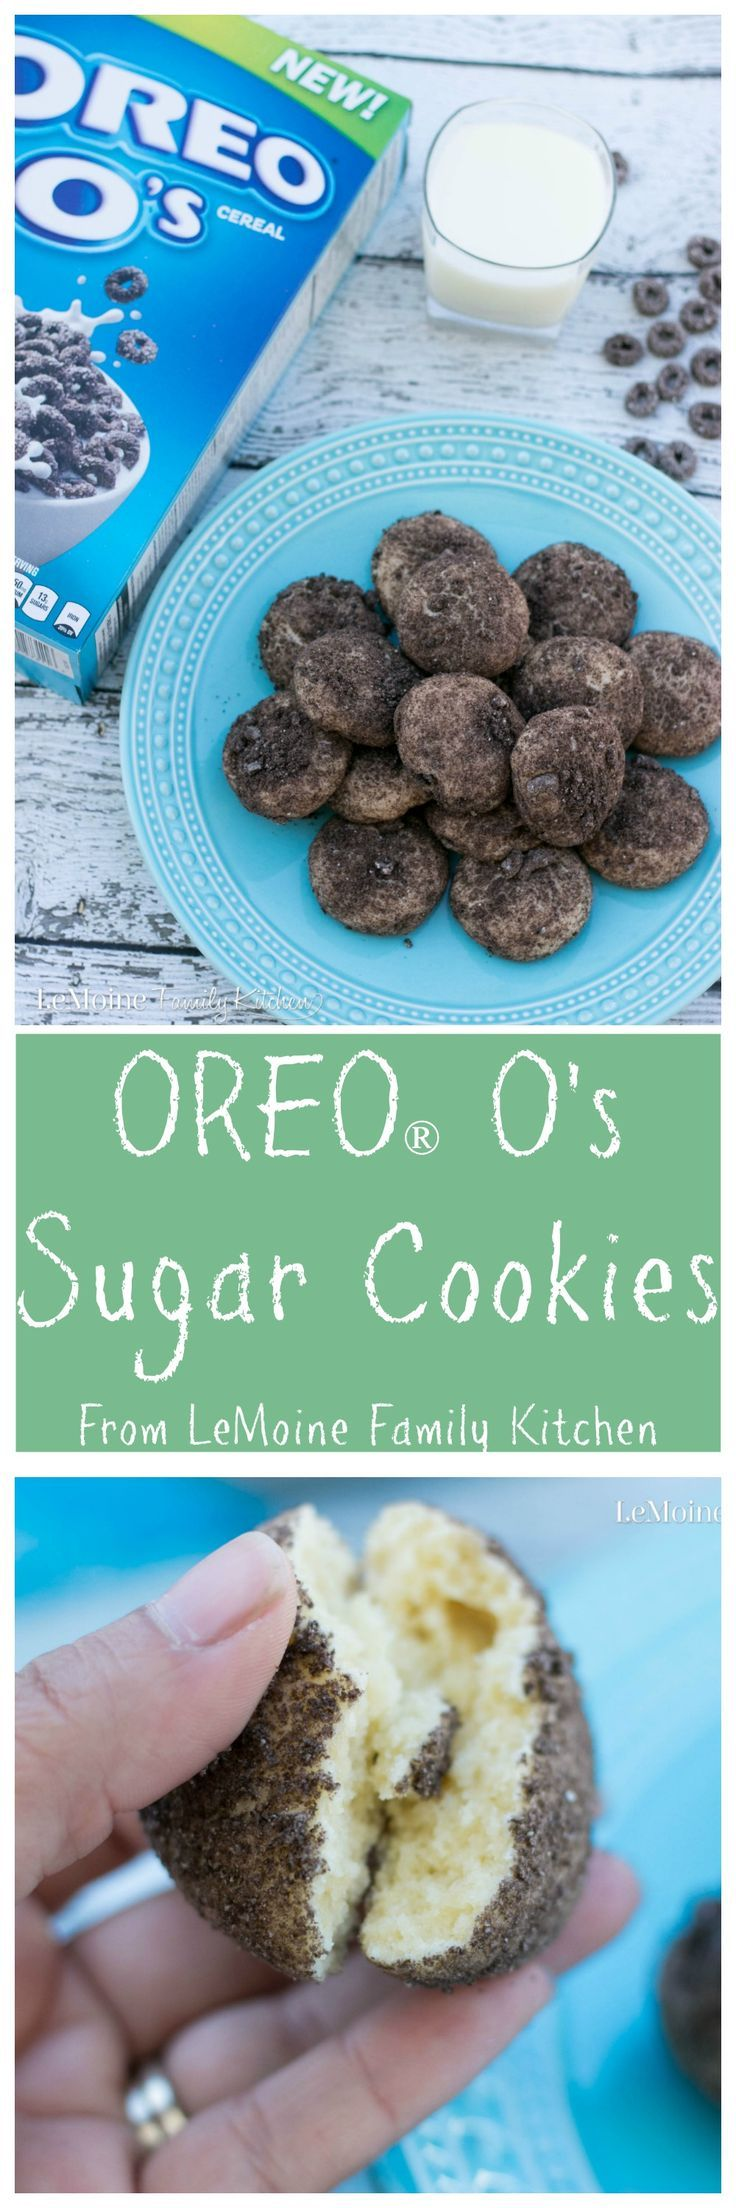 OREO®️️ O's Sugar Cookies. A perfect back to school snack with the #BestCerealEver. Perfectly dunk-able sugar cookie coated in crushed OREO O's cereal! #ad @ShopRiteStores